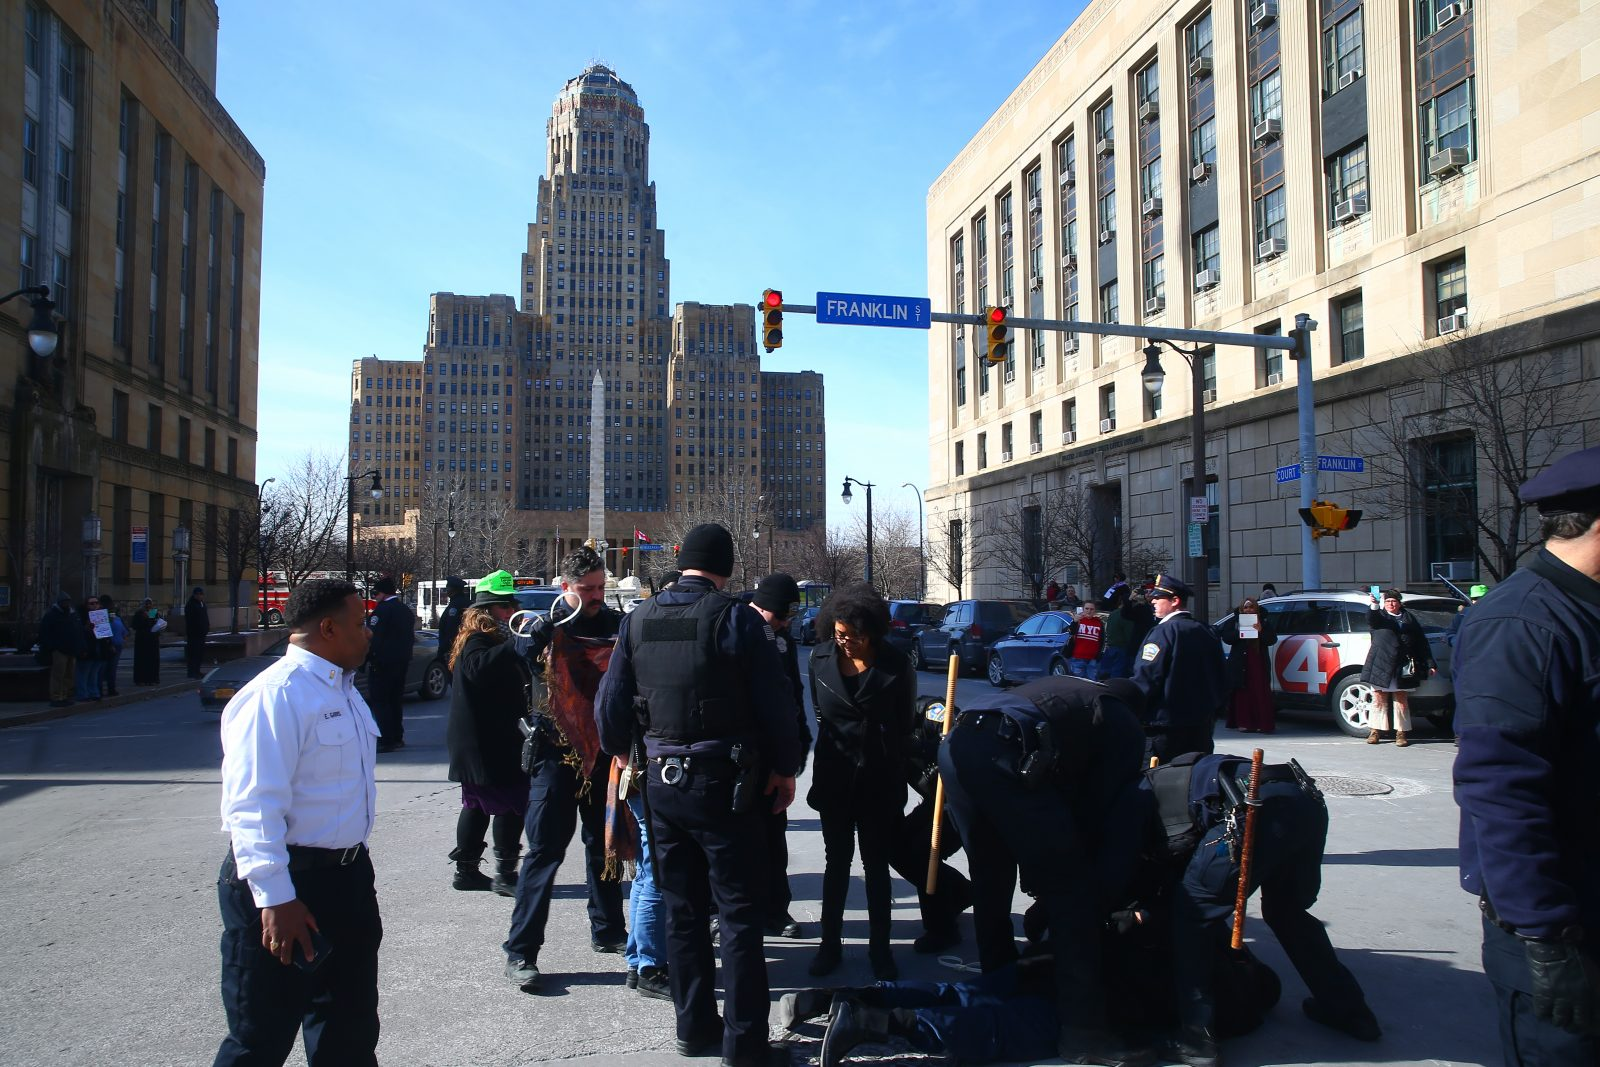 Protesters urge Mayor Byron Brown to denounce police brutality outside the Convention Center where he was giving his State of the City address Friday. Several protesters were arrested after blocking traffic in the intersection. (John Hickey/Buffalo News)